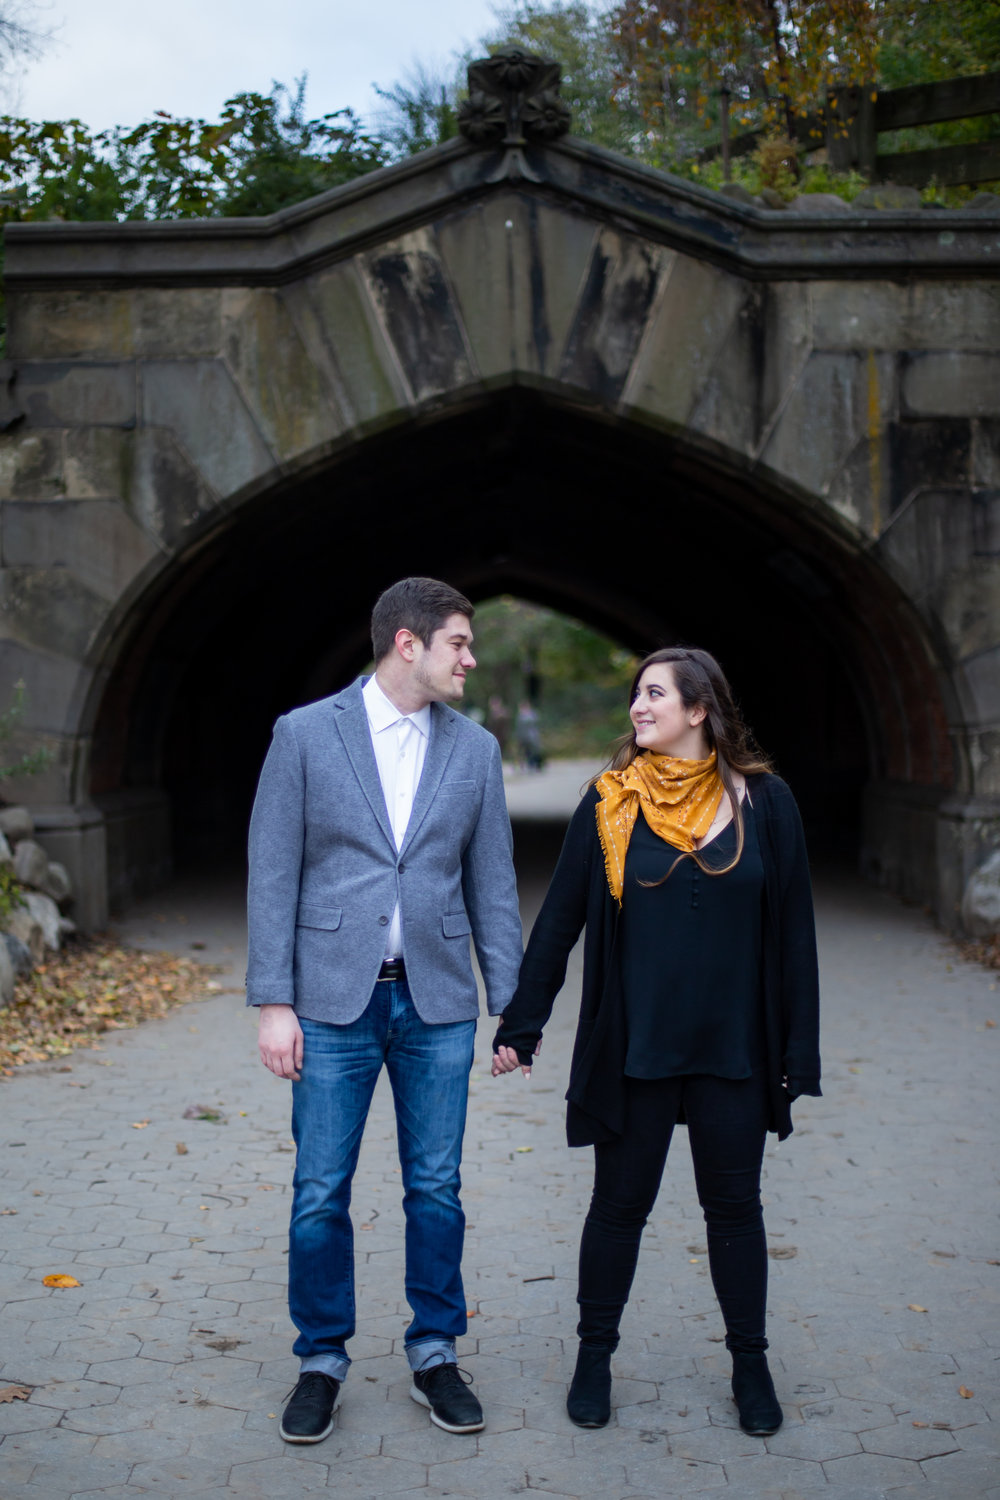 Kate-Alison-Photography-Prospect-Park-Brooklyn-Engagement-Session-Jenna-James-87.jpg